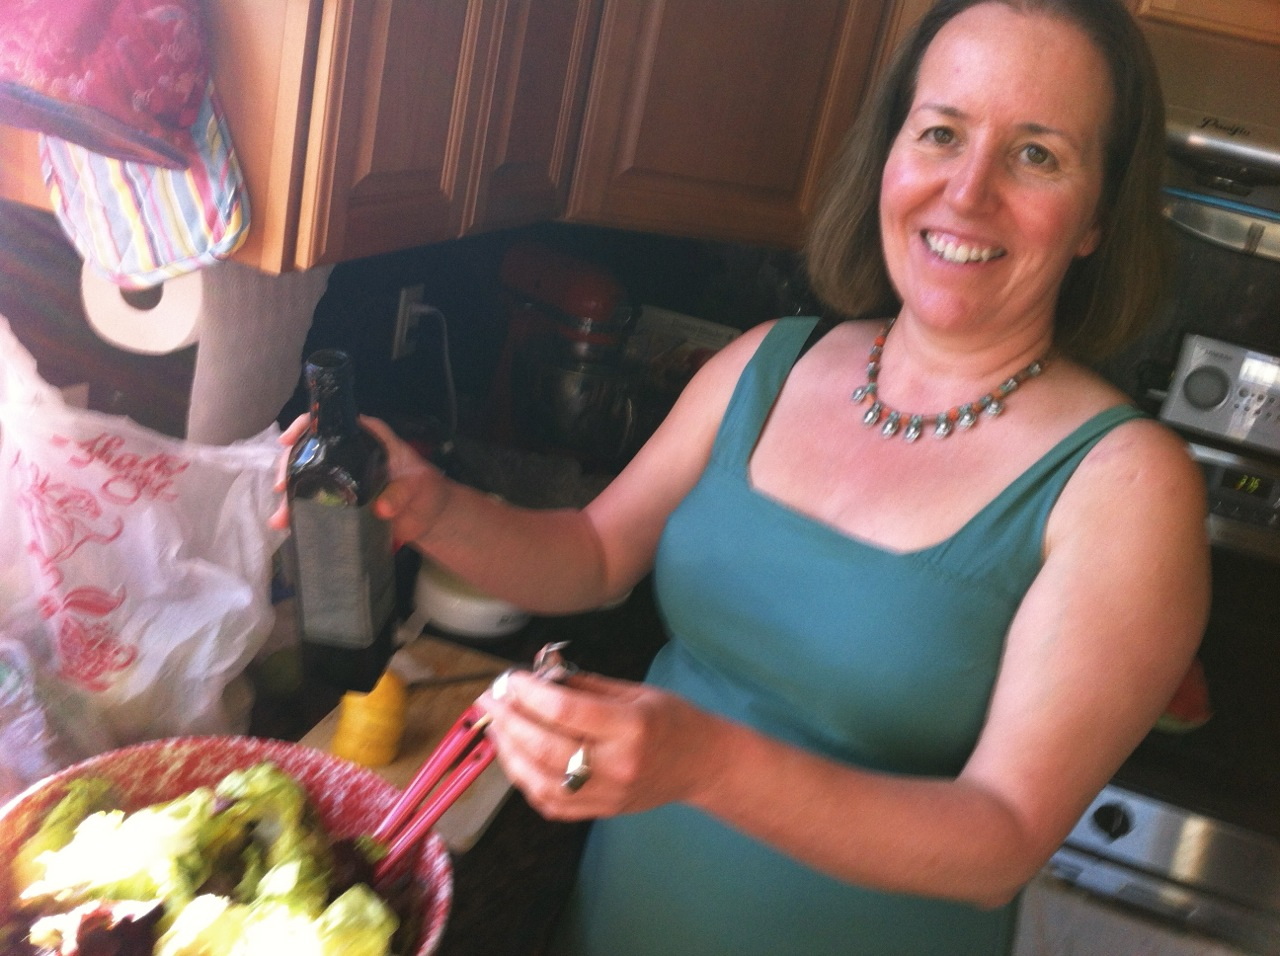 Liza prepping the birthday salad